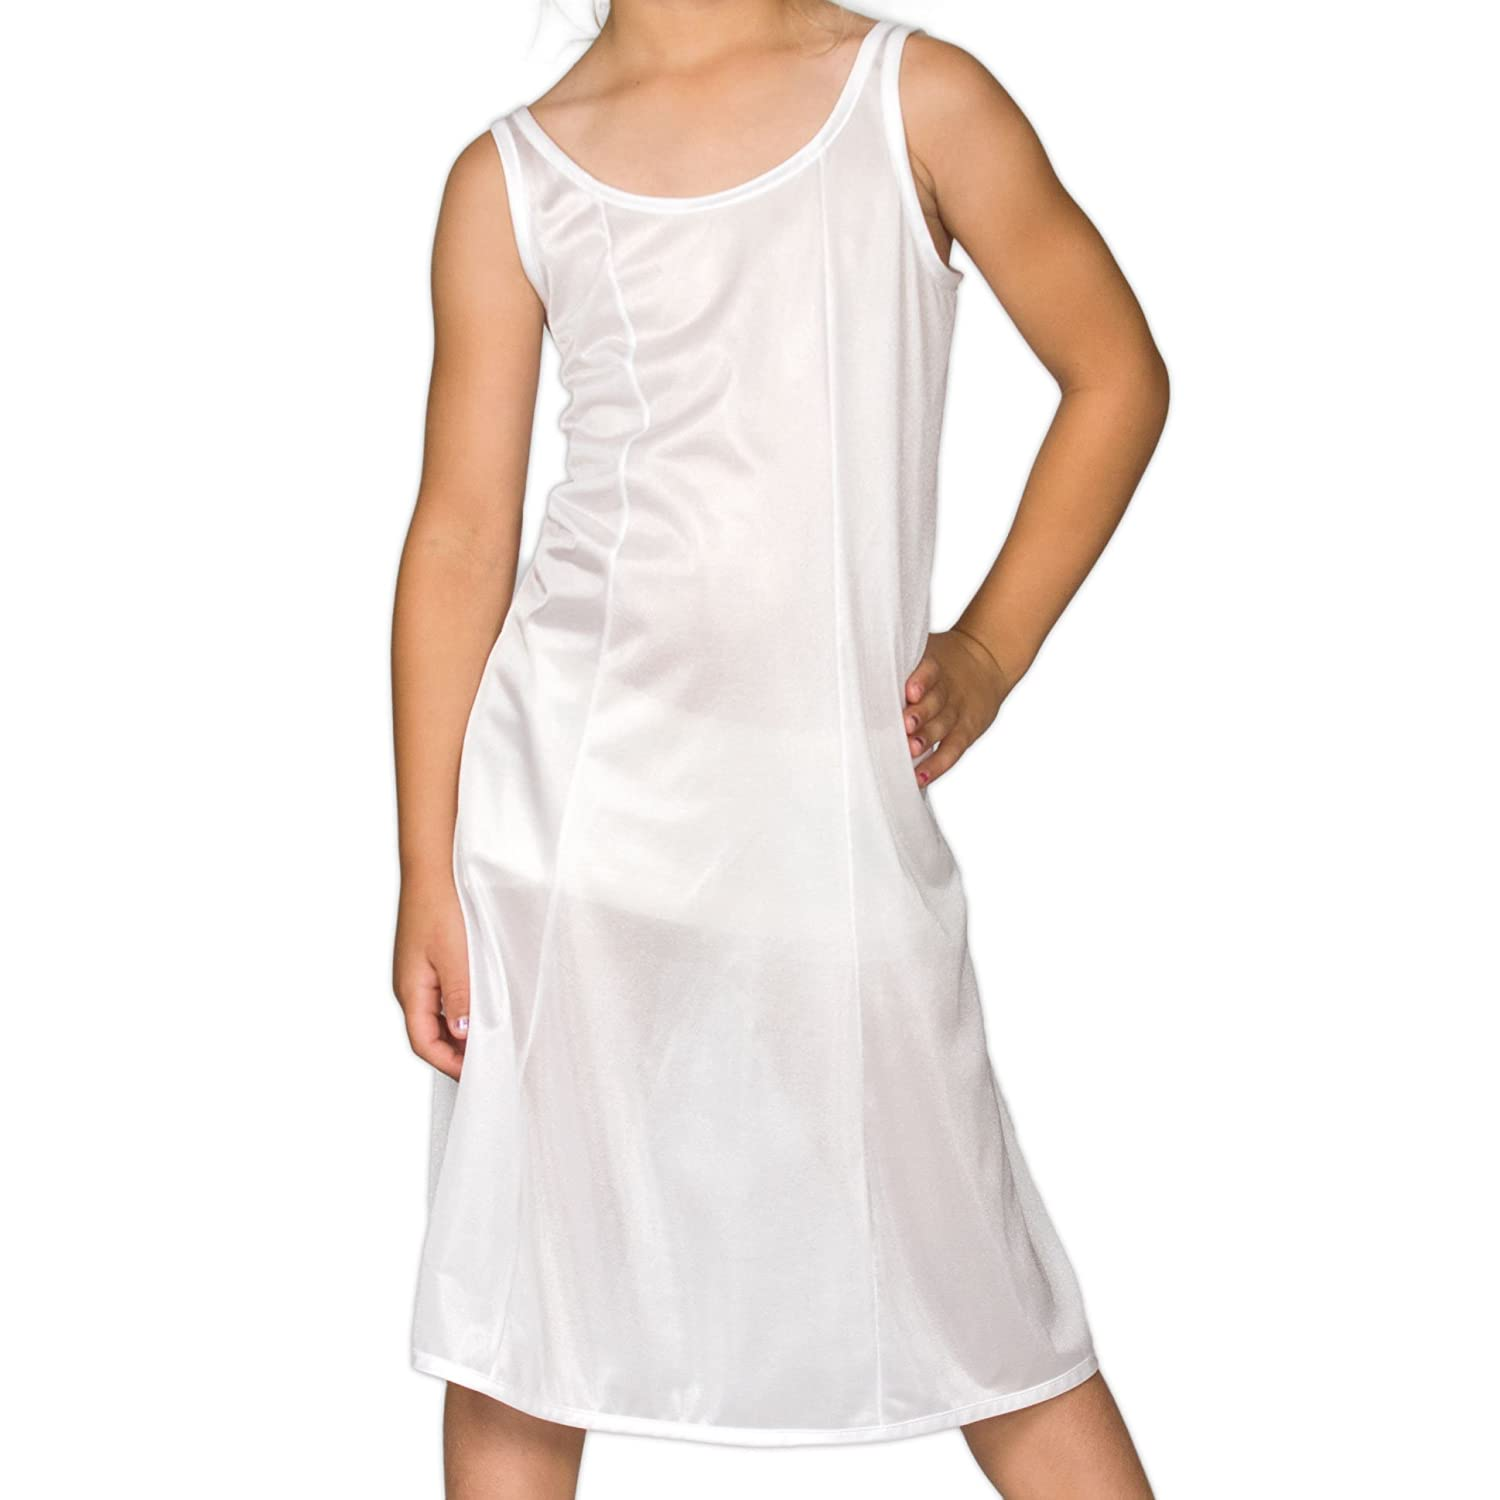 I.C. Collections Big Girls White Sleek Nylon Slip - Tea Length, 8 - 16 New ICM 000414-WHC-Can